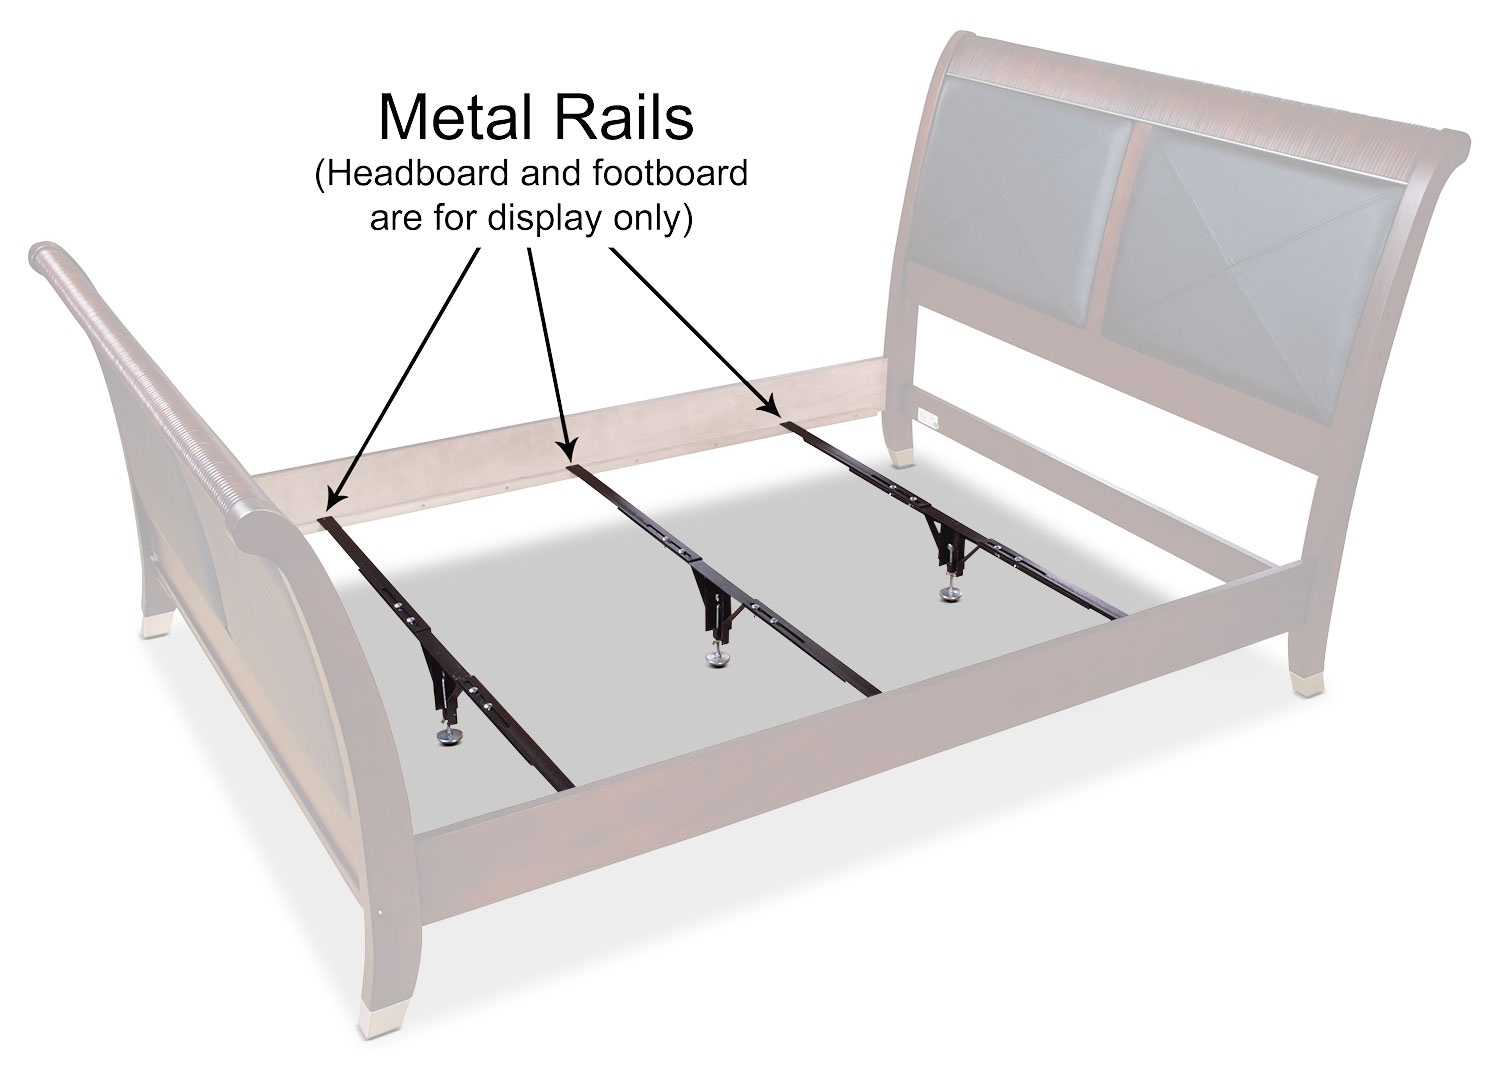 Mattresses and Bedding - Deluxe Full/Queen/King Metal Support Rails – Set of 3